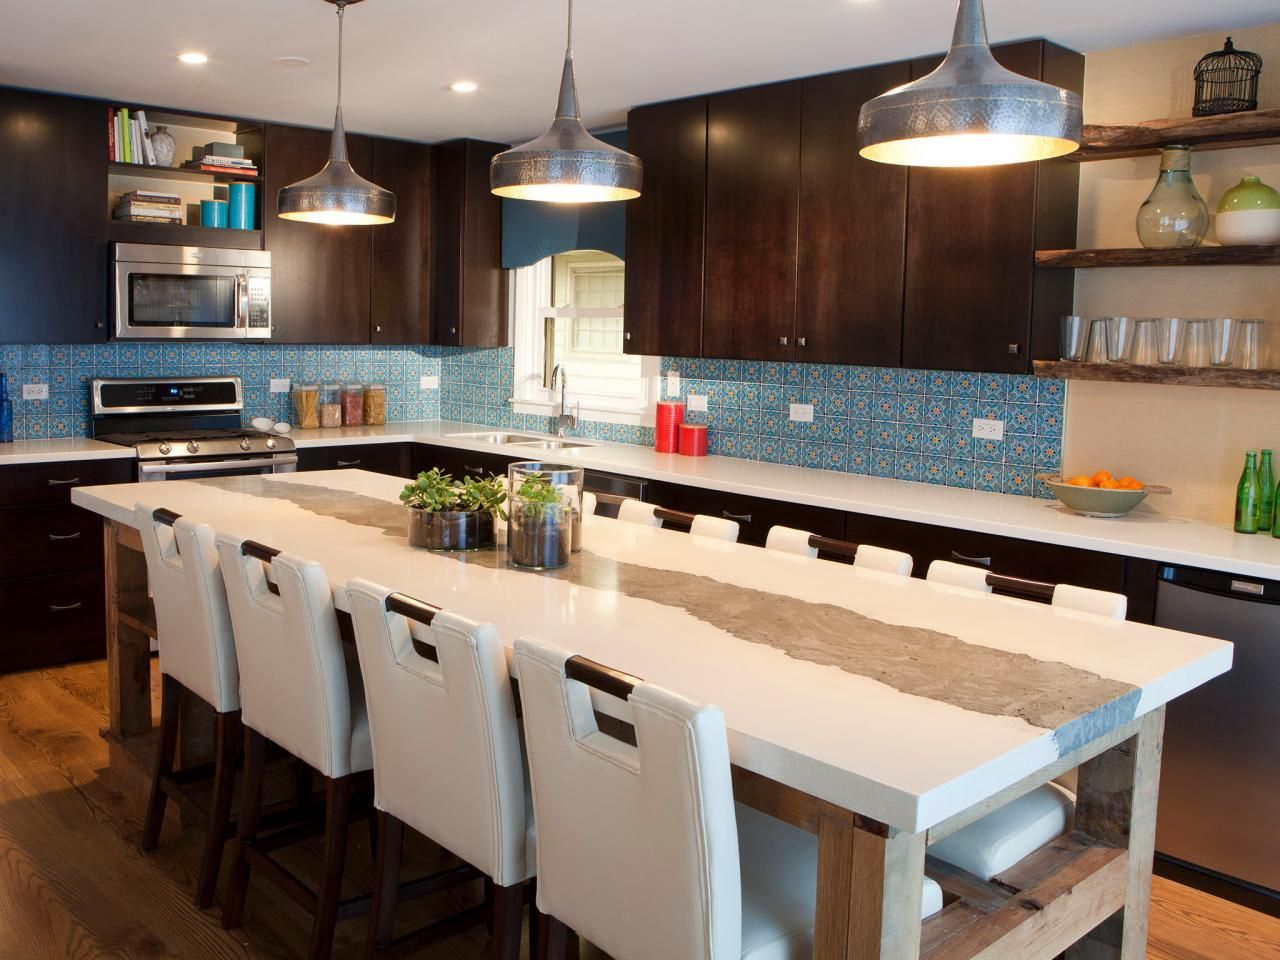 2019 remodel kitchen island interior paint color ideas check more